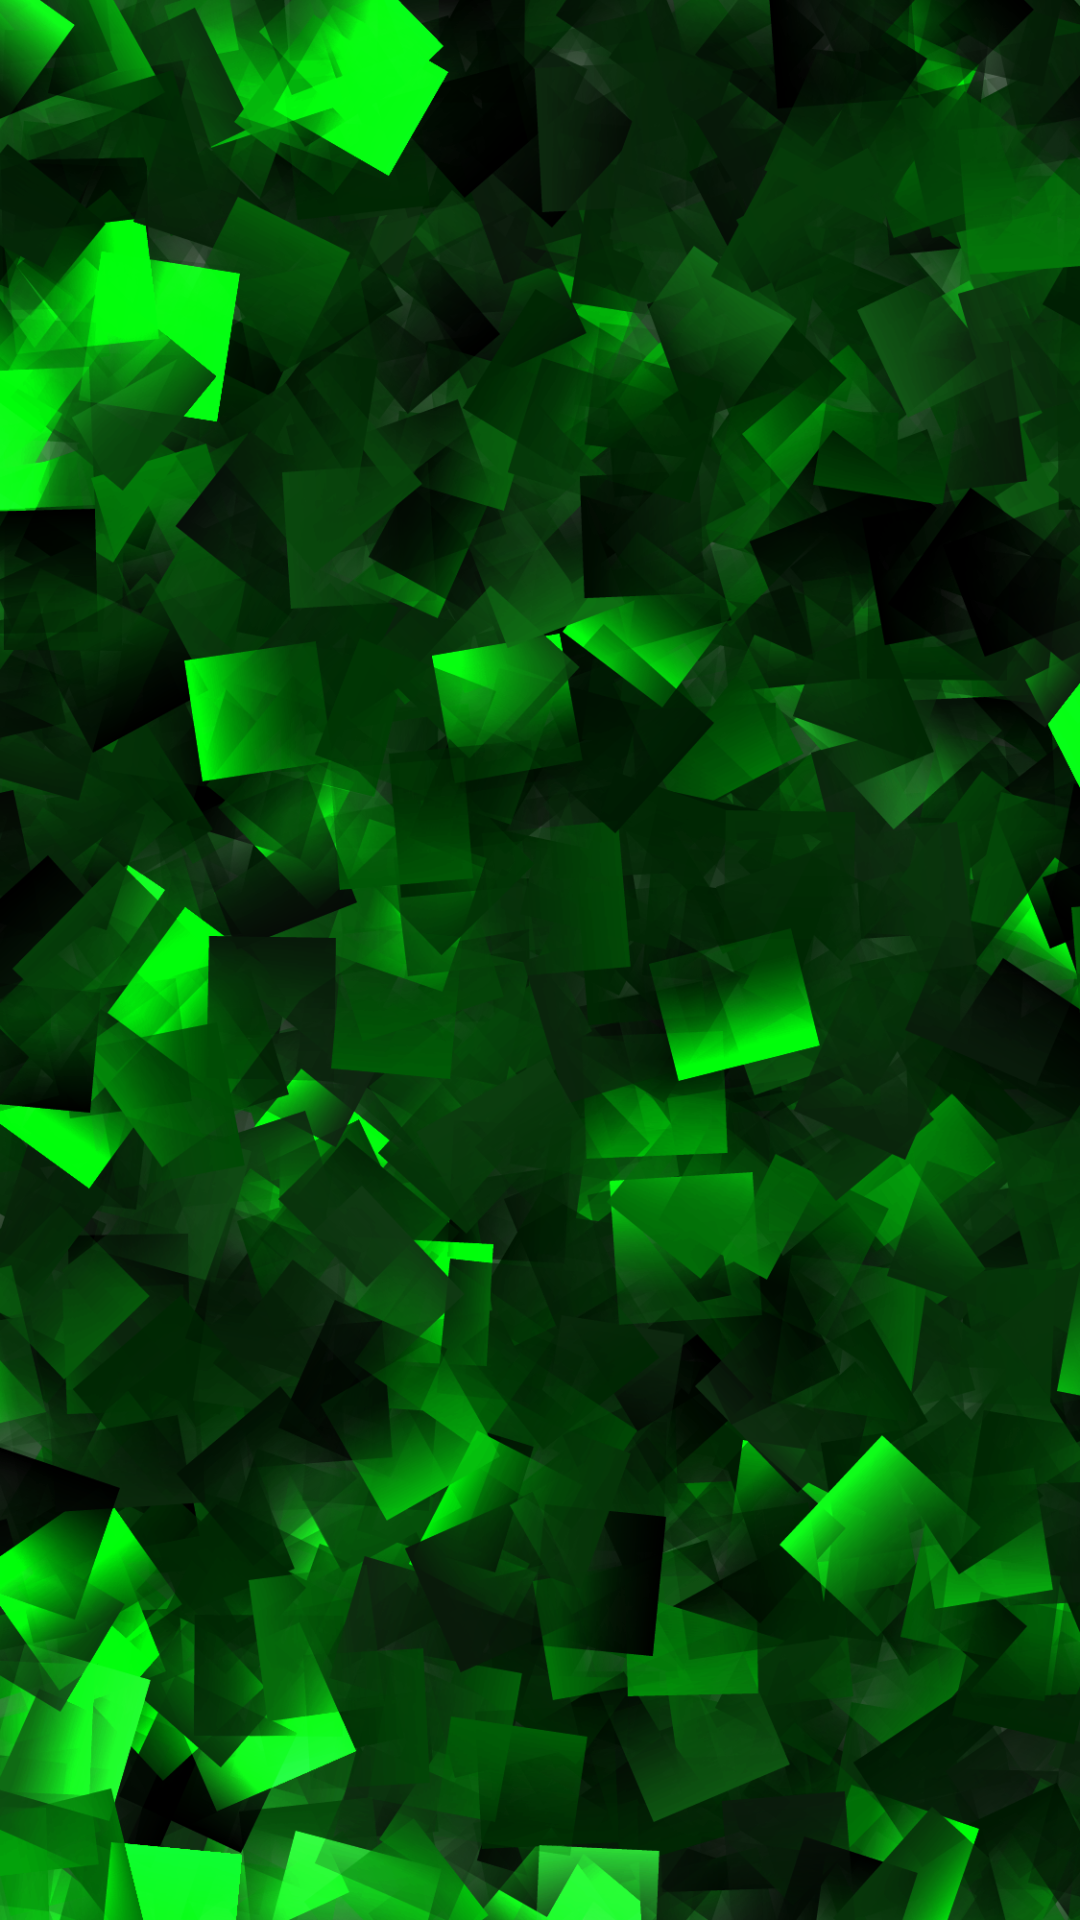 1080x1920 Abstract/Green (1080x1920) Wallpaper ID: 706886 - Mobile Abyss